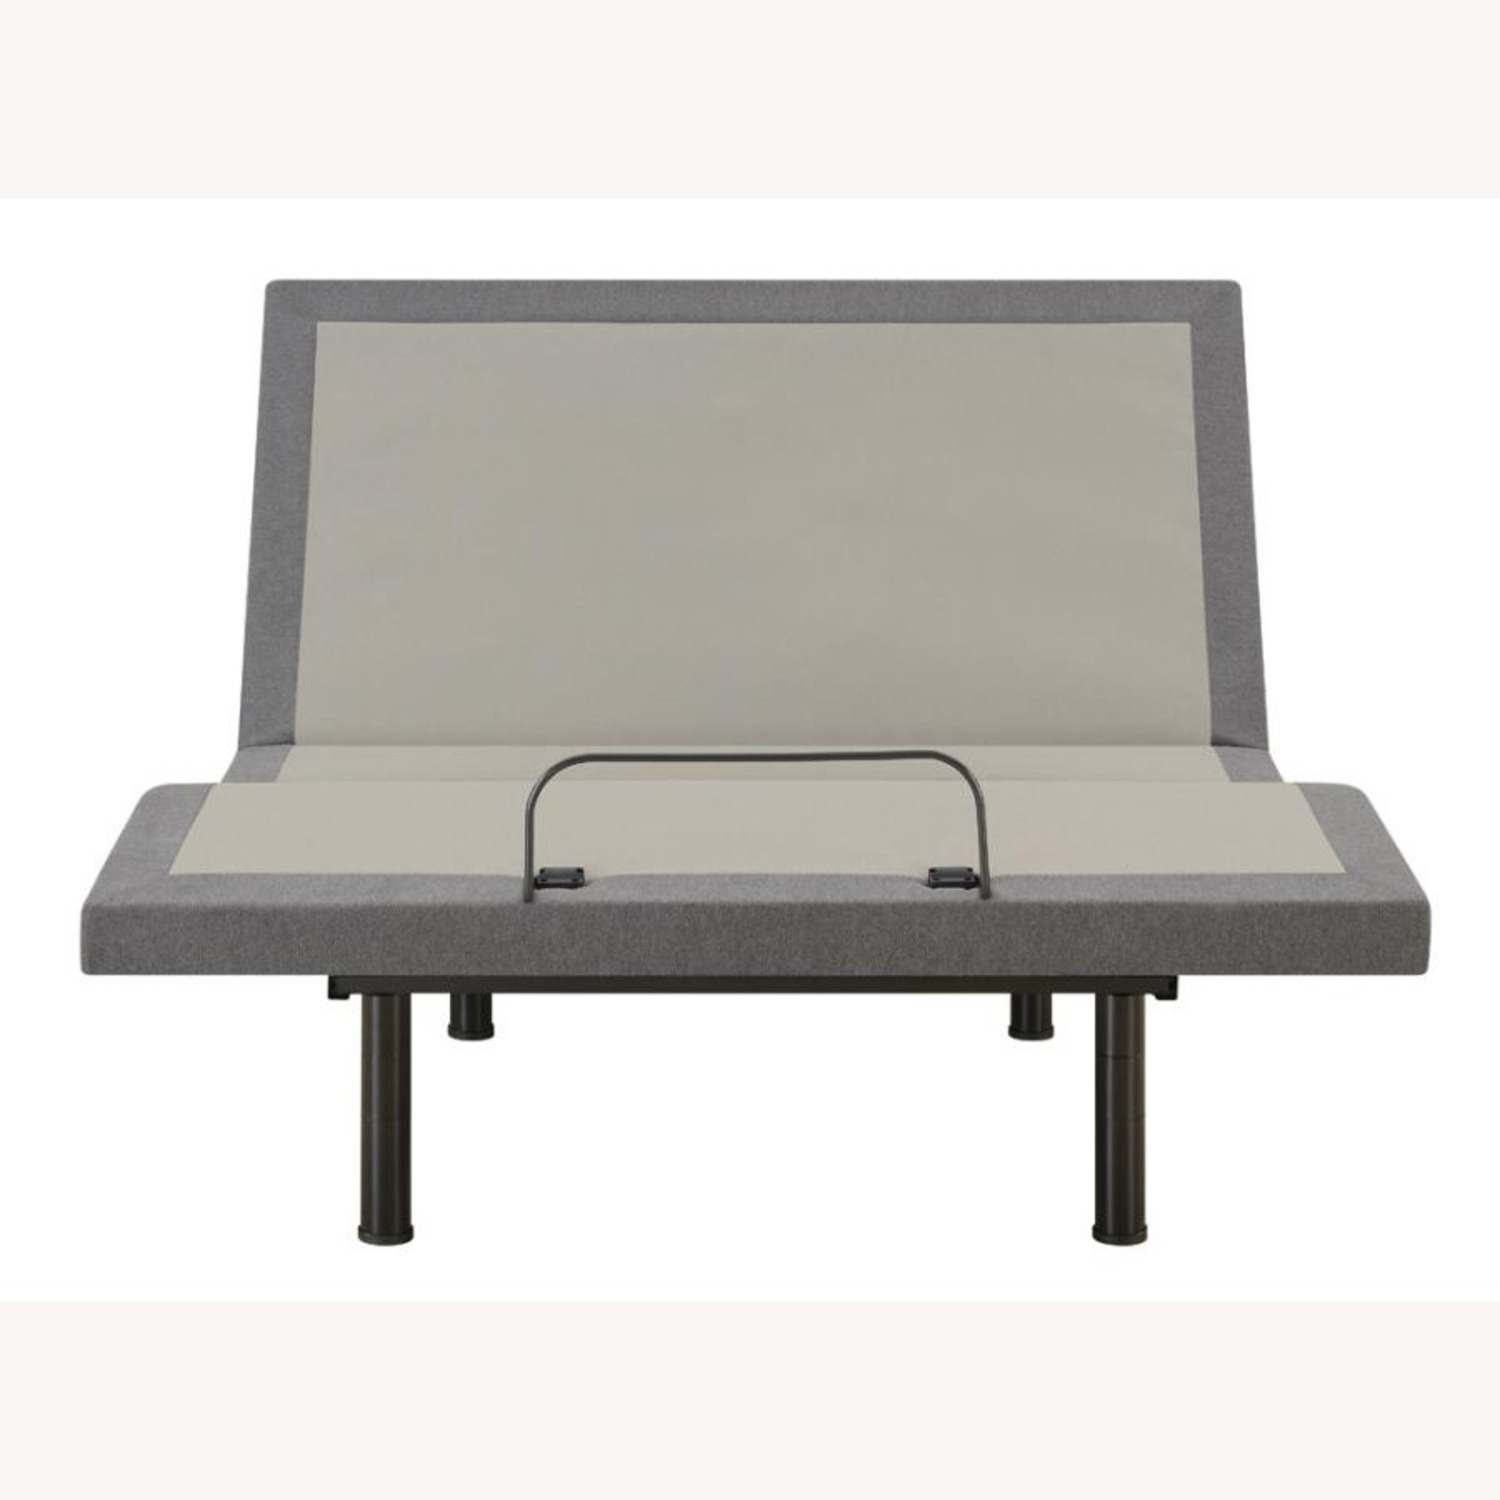 Adjustable Queen Bed Base In Grey Fabric - image-1